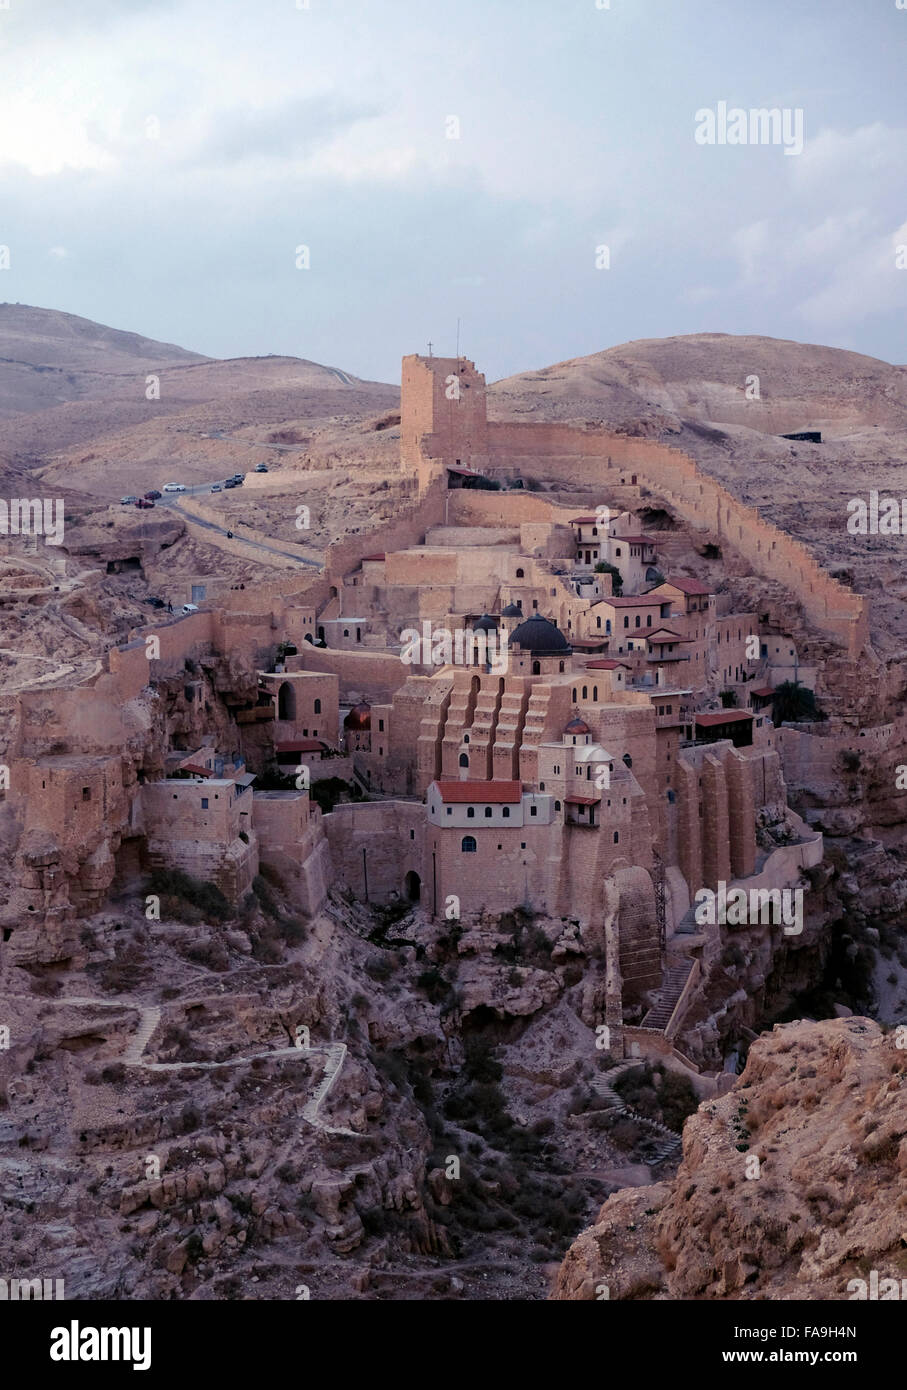 View of the Greek Orthodox monastery of Saint Sabbas the Sanctified known in Arabic as Mar Saba in the Judaean or - Stock Image